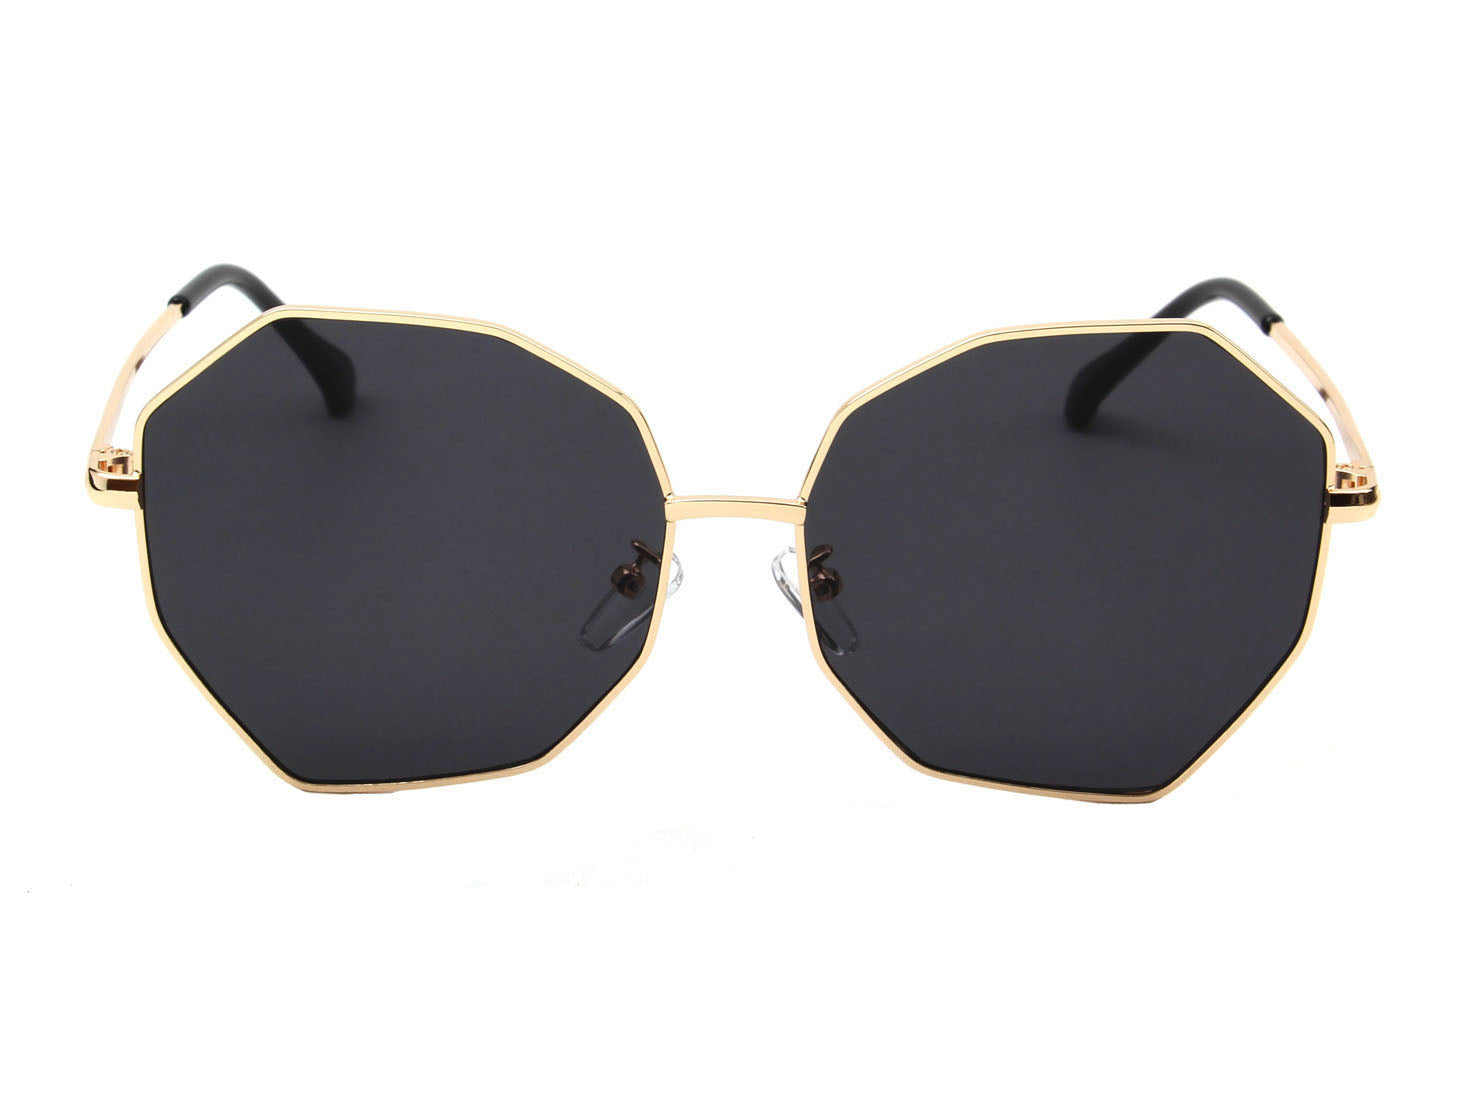 J2002 - Women Round Oversize Geometric Fashion Sunglasses